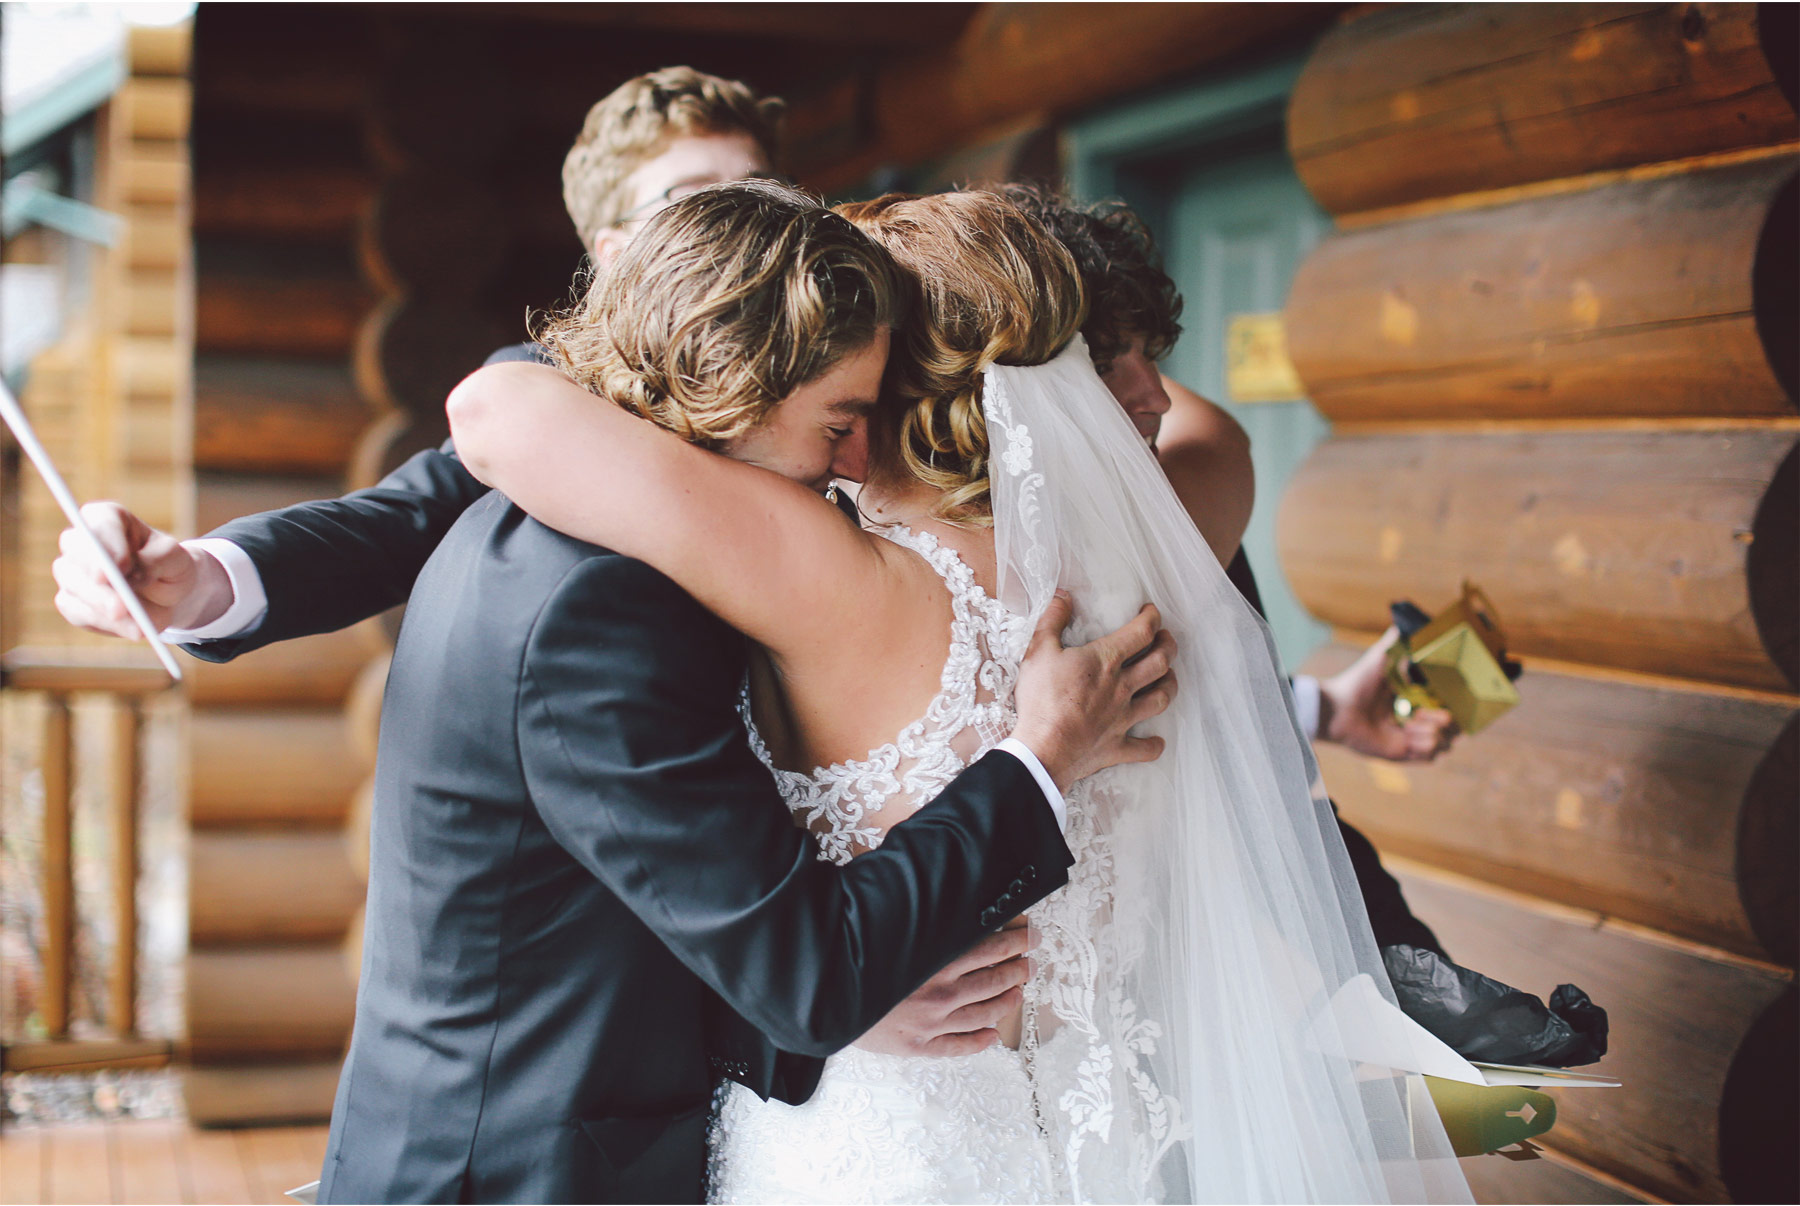 04-Minnesota-Wedding-by-Andrew-Vick-Photography-Grand-Superior-Lodge-Duluth-Two-Harbors-Bride-Brothers-Hug-Veronica-and-Tyler.jpg